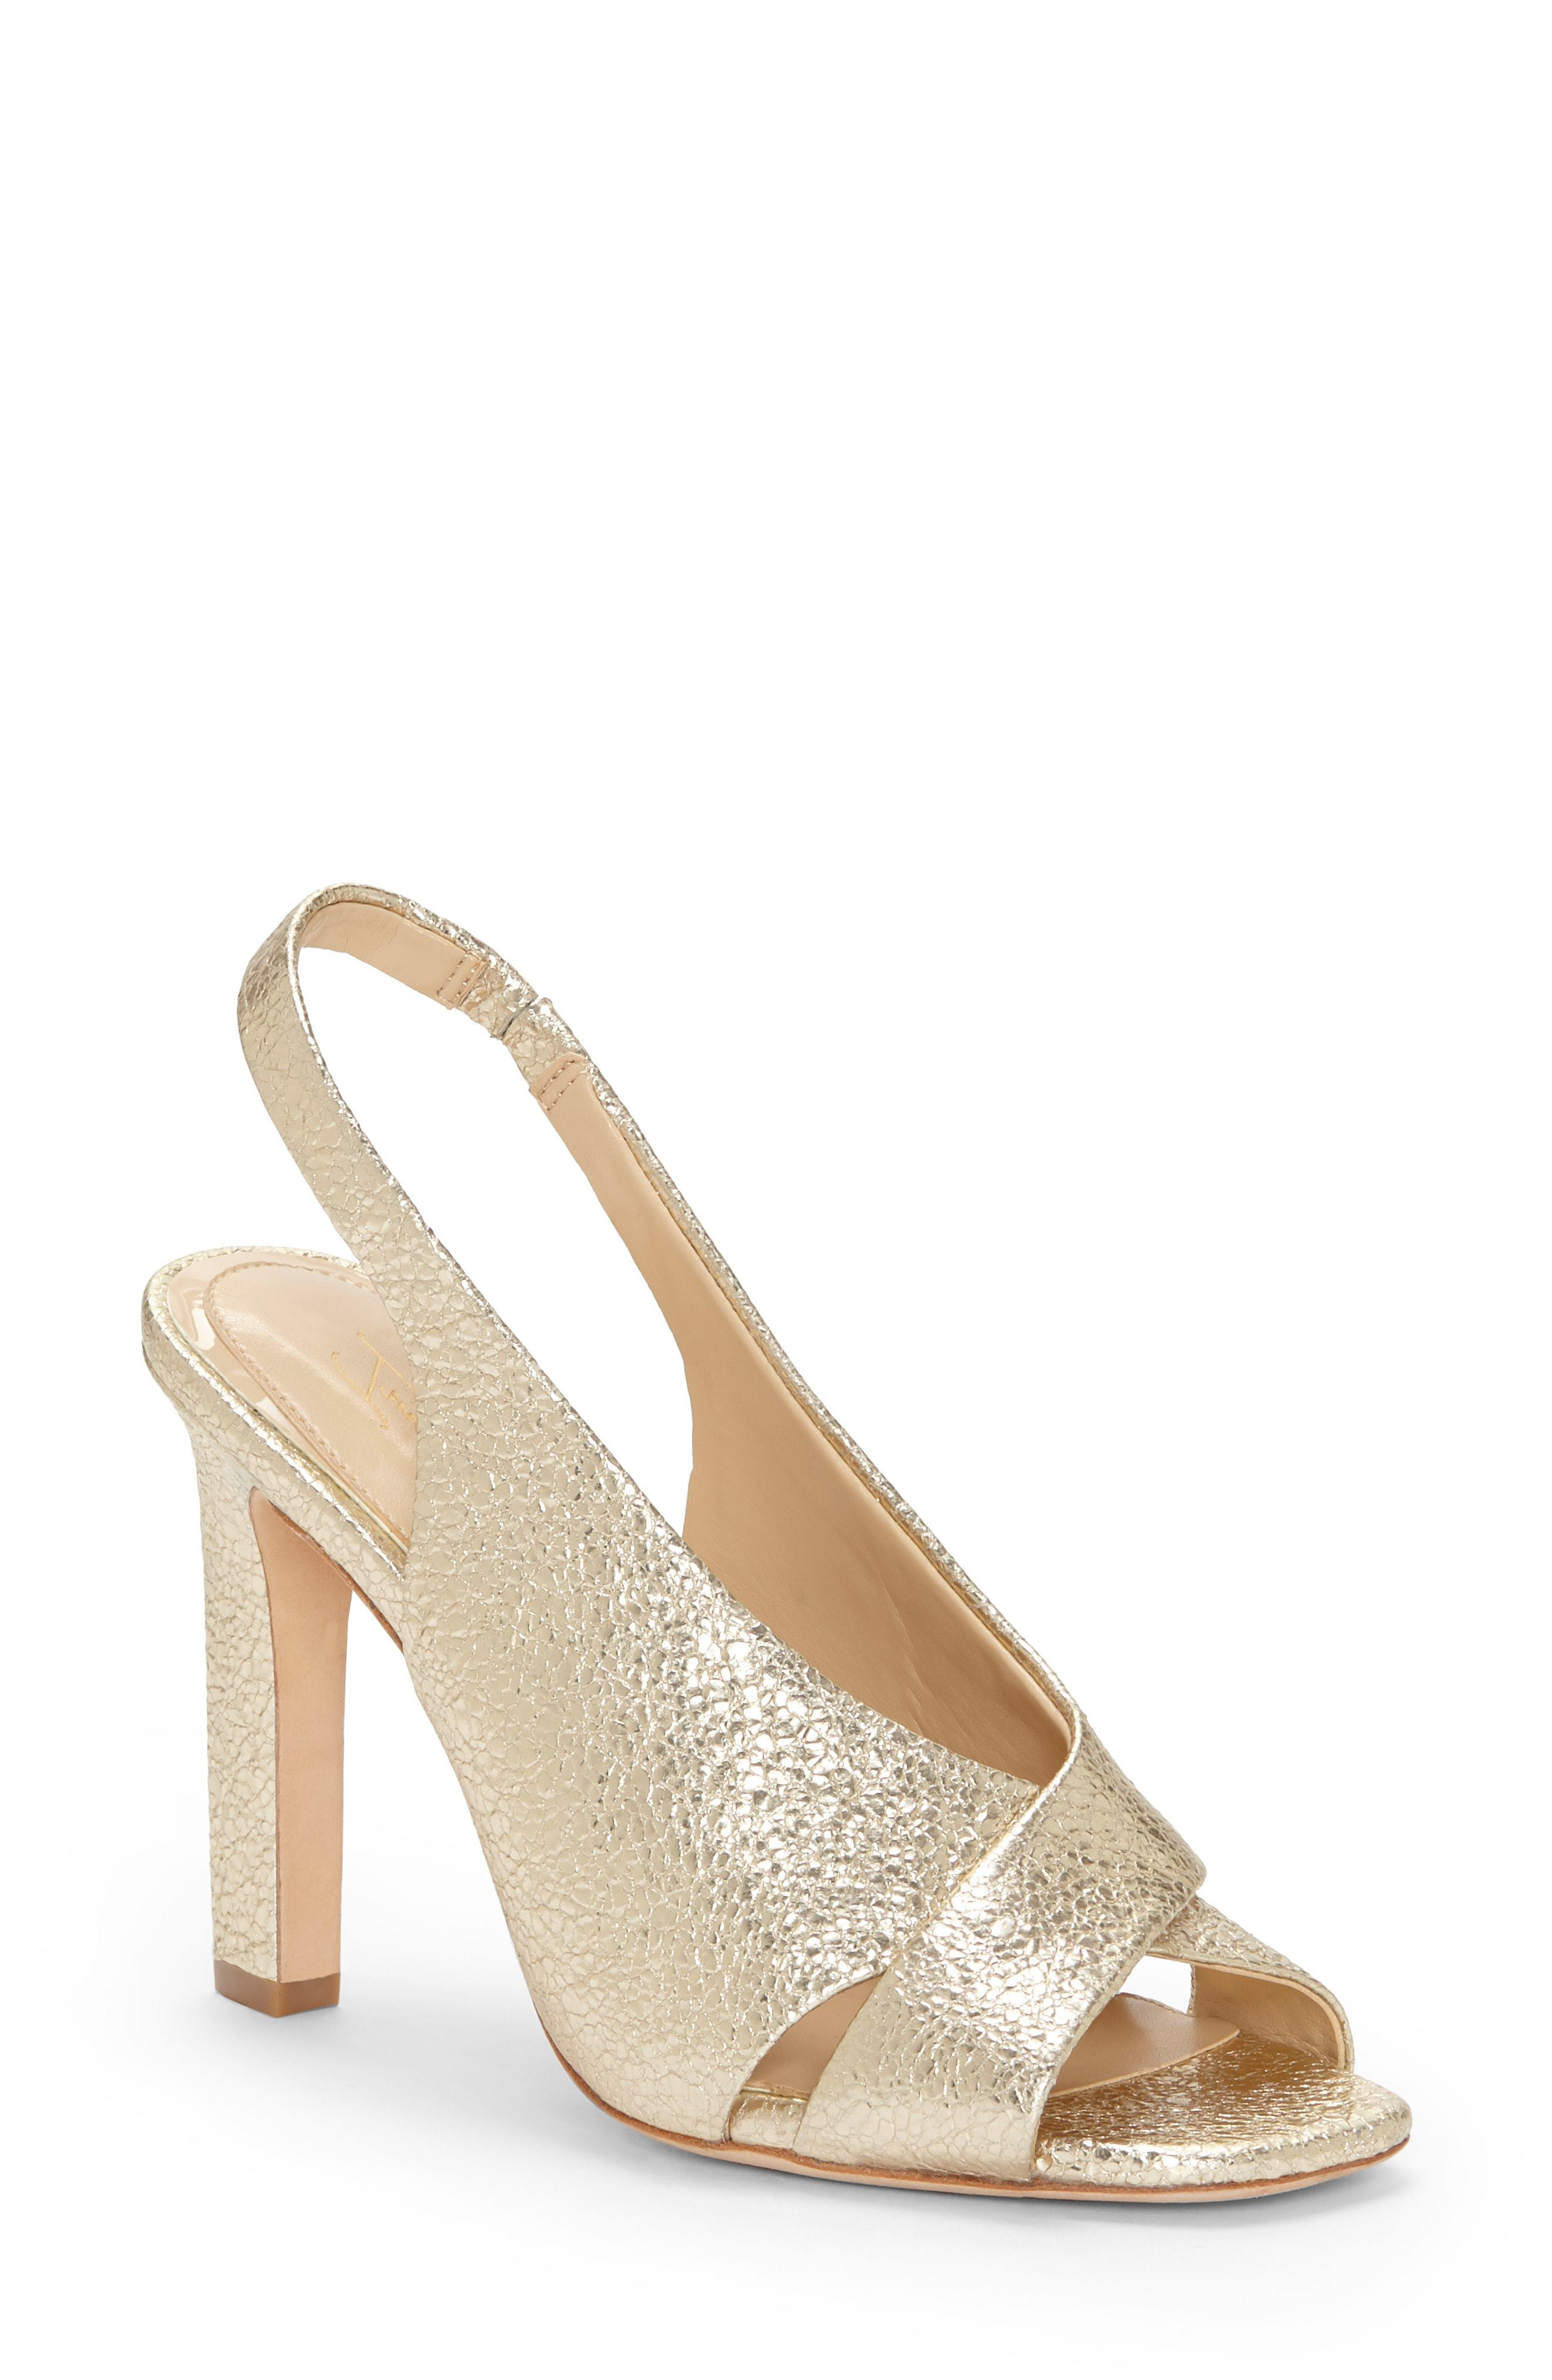 360775d2dbb ... Gold Leather Heeled Sandals Imagine by Vince Camuto Wrennie Slingback  Sandal